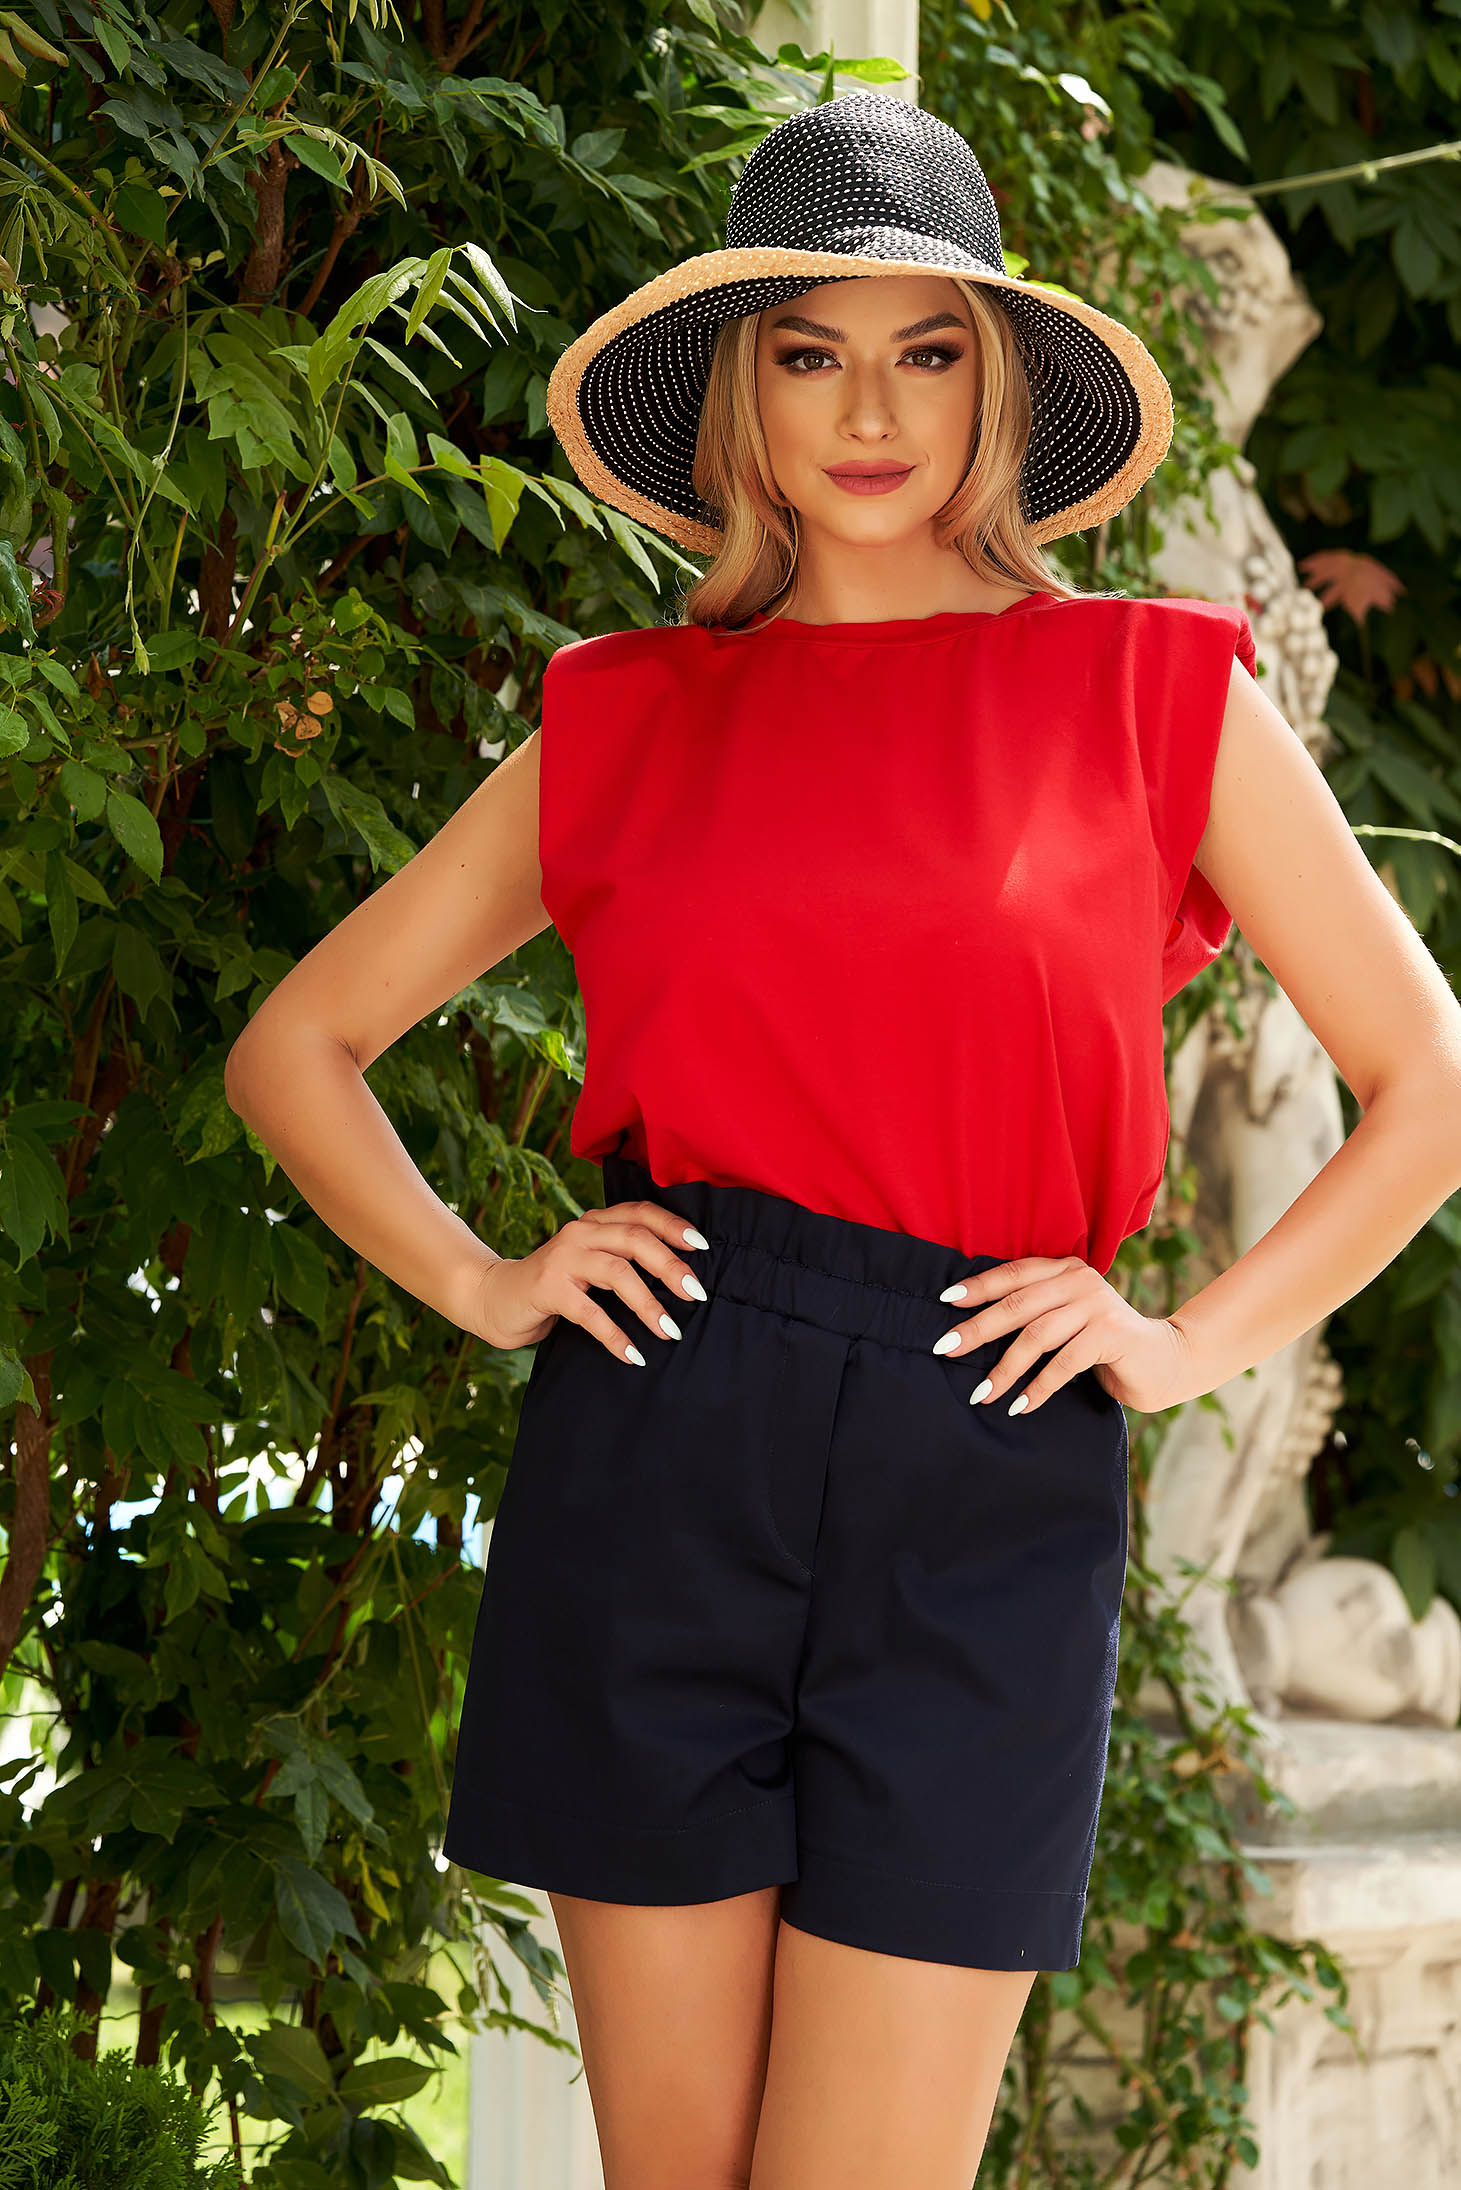 Red top shirt with easy cut with padded shoulders thin fabric